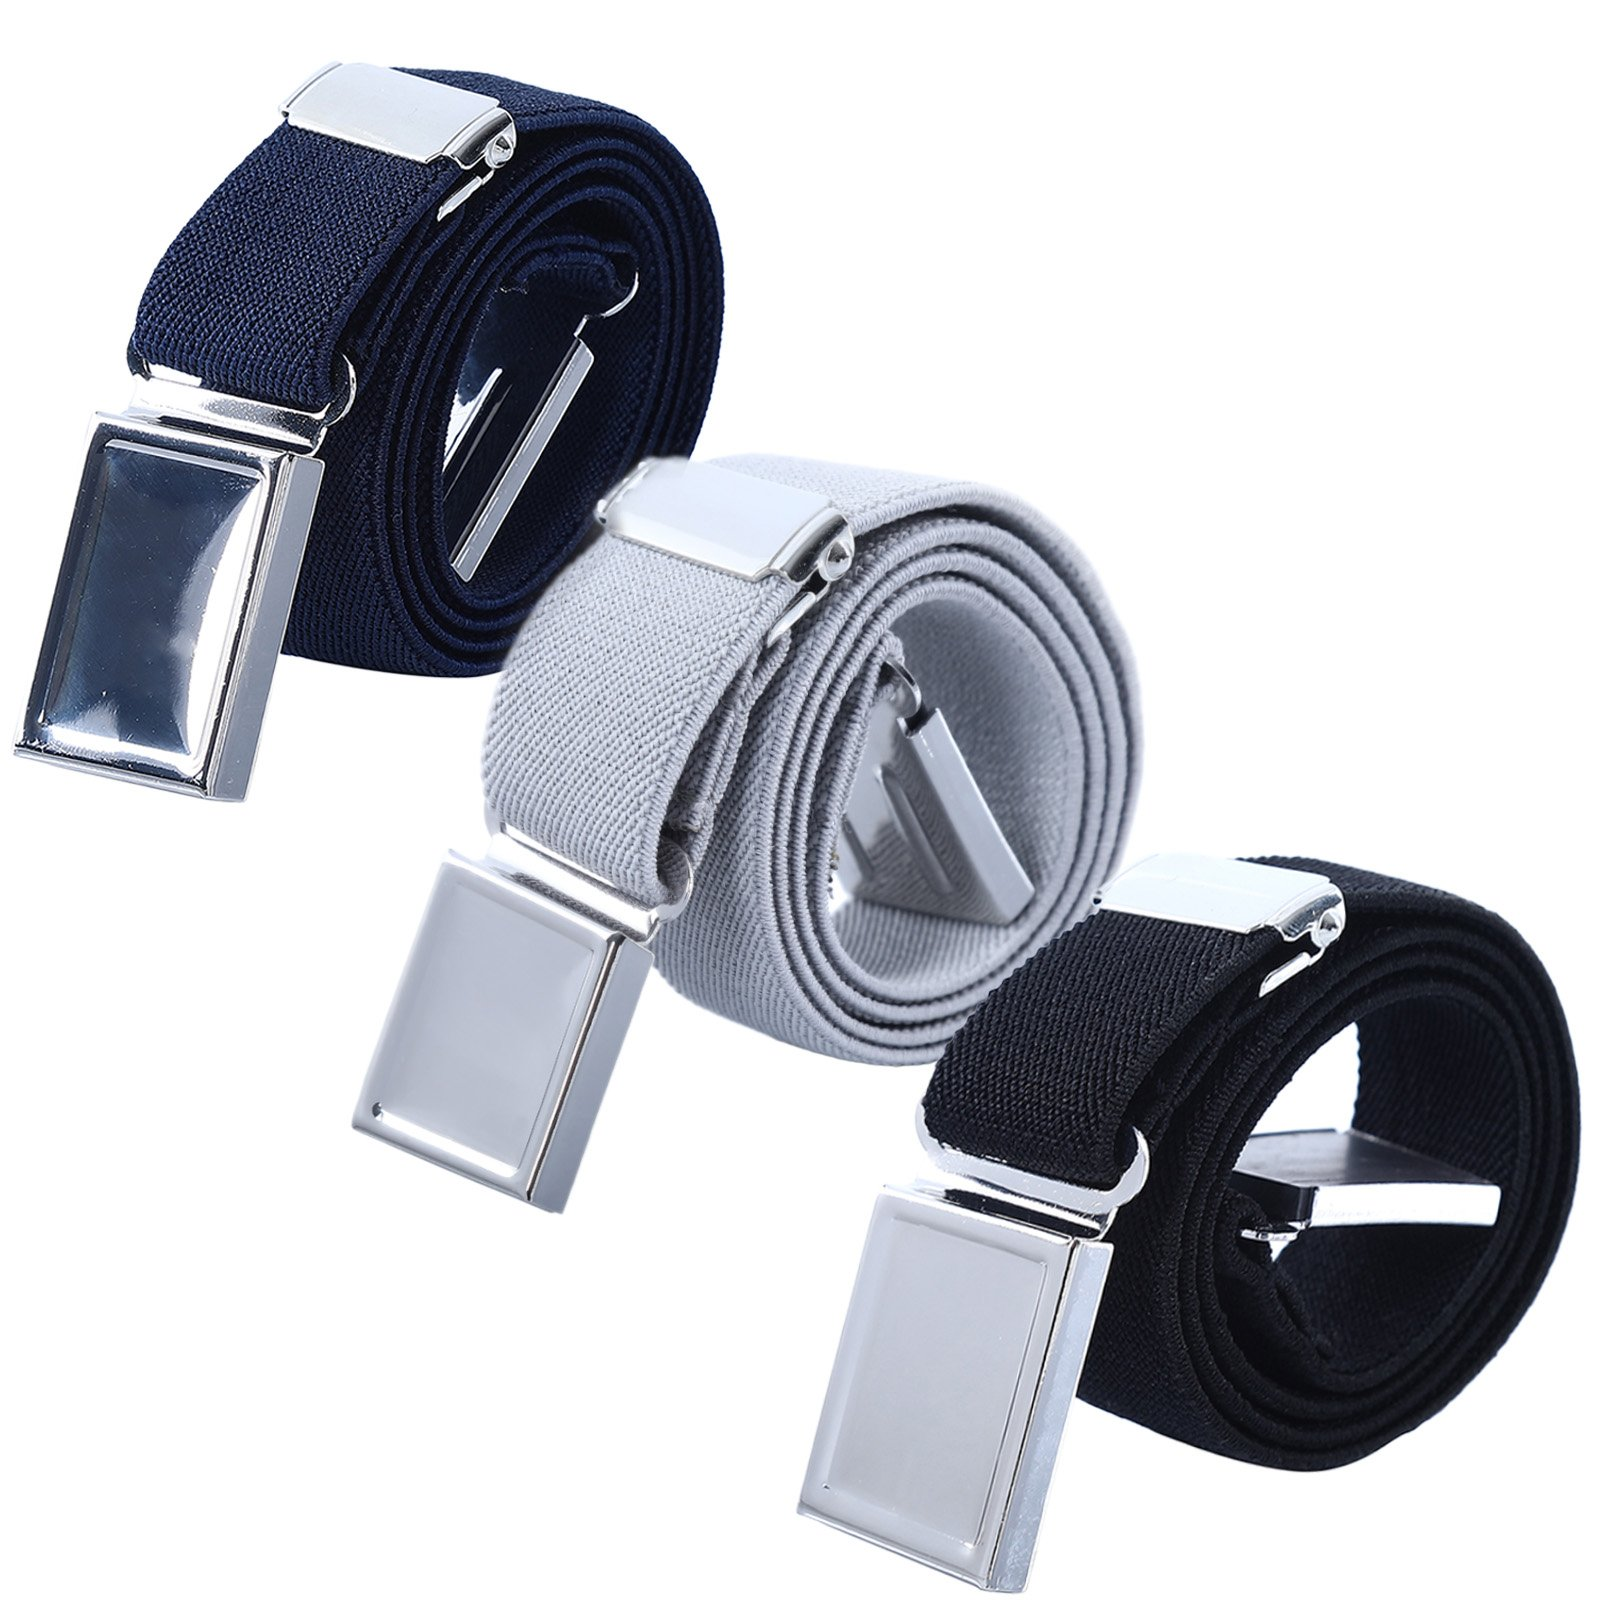 Boy Kids Magnetic Buckle Belt - Adjustable Elastic Children's Belts for Girls, 3 Pieces (Navy blue/Gray/Black)